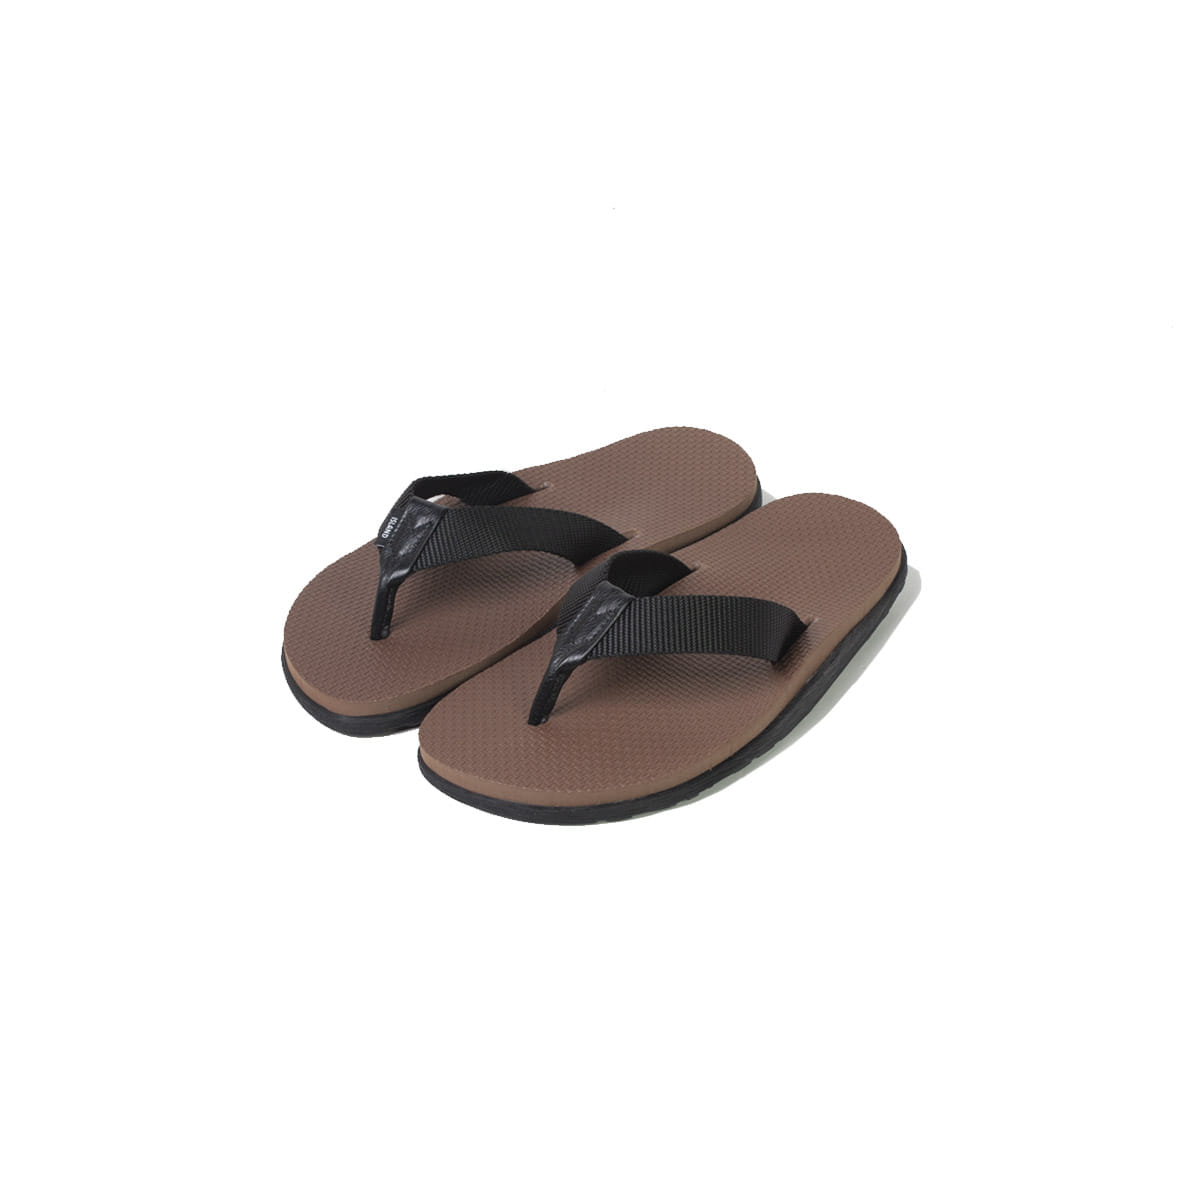 [ISLAND SLIPPER] K1P910LT 'BLACK'